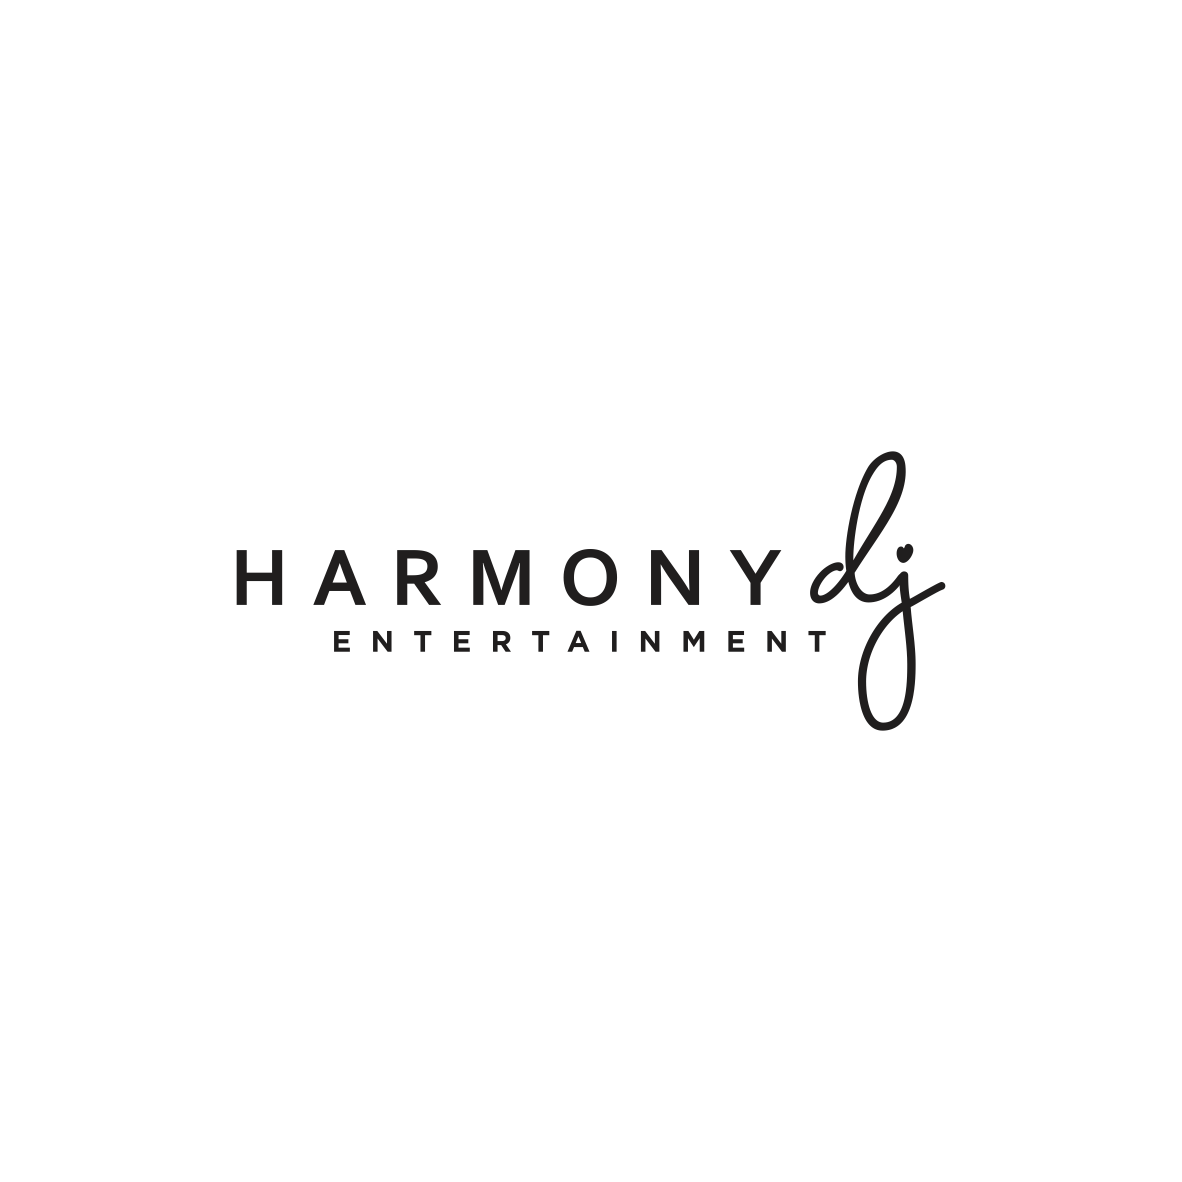 Harmony DJ Entertainment needs your design skills to help evolve the wedding industry :)